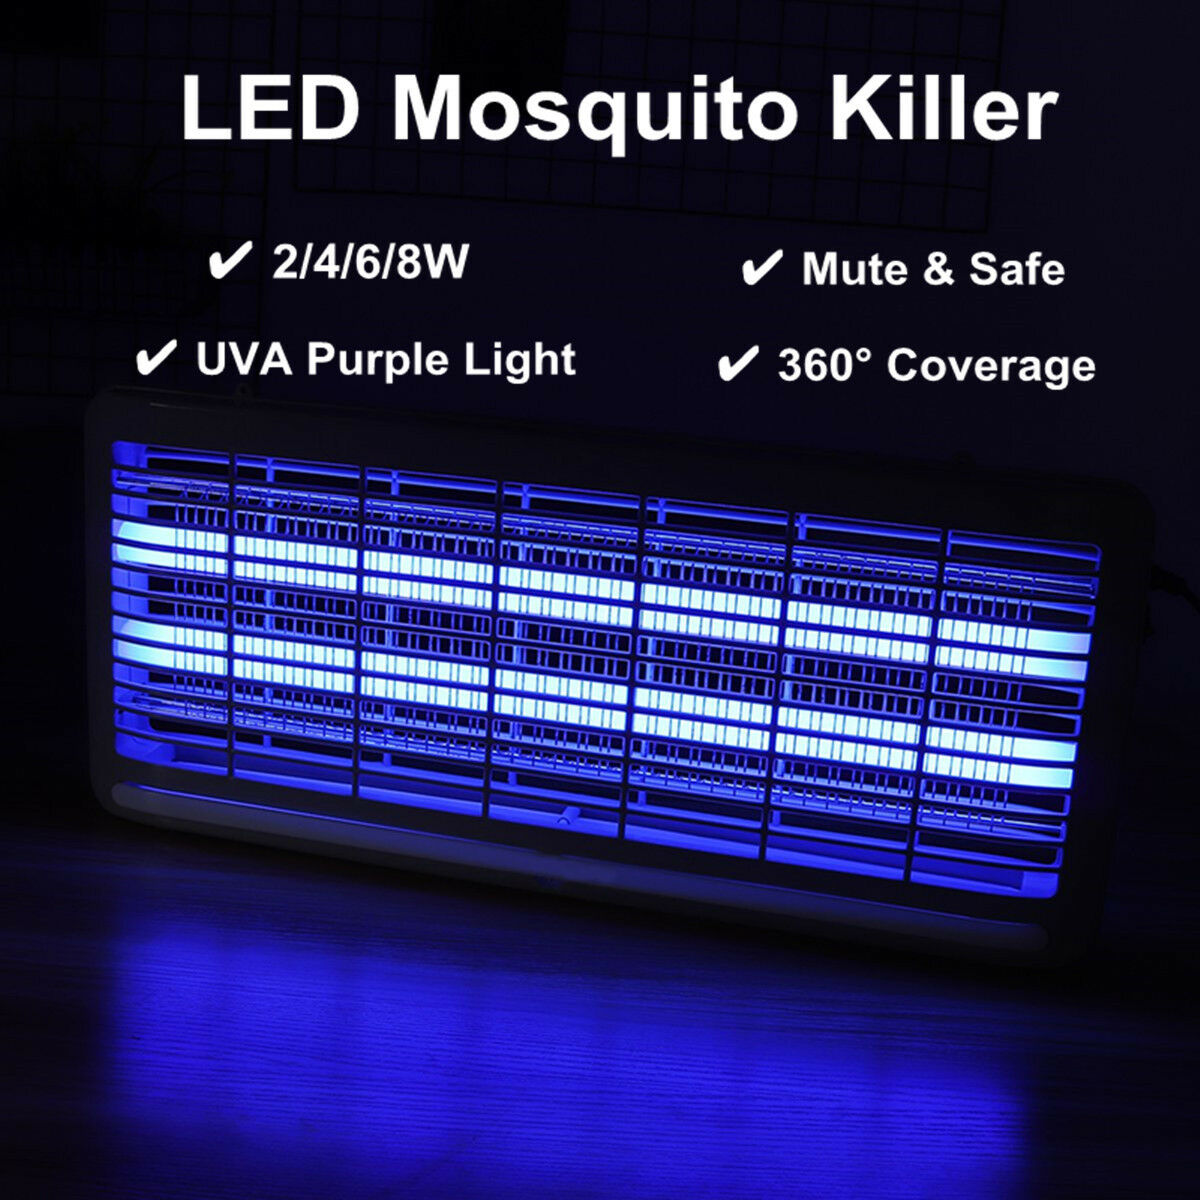 2 4 6 8w Led Electric Mosquito Killer Uv Lamp Insect Pest Fly Bug Driver Board Circuit 1 Of 8free Shipping See More